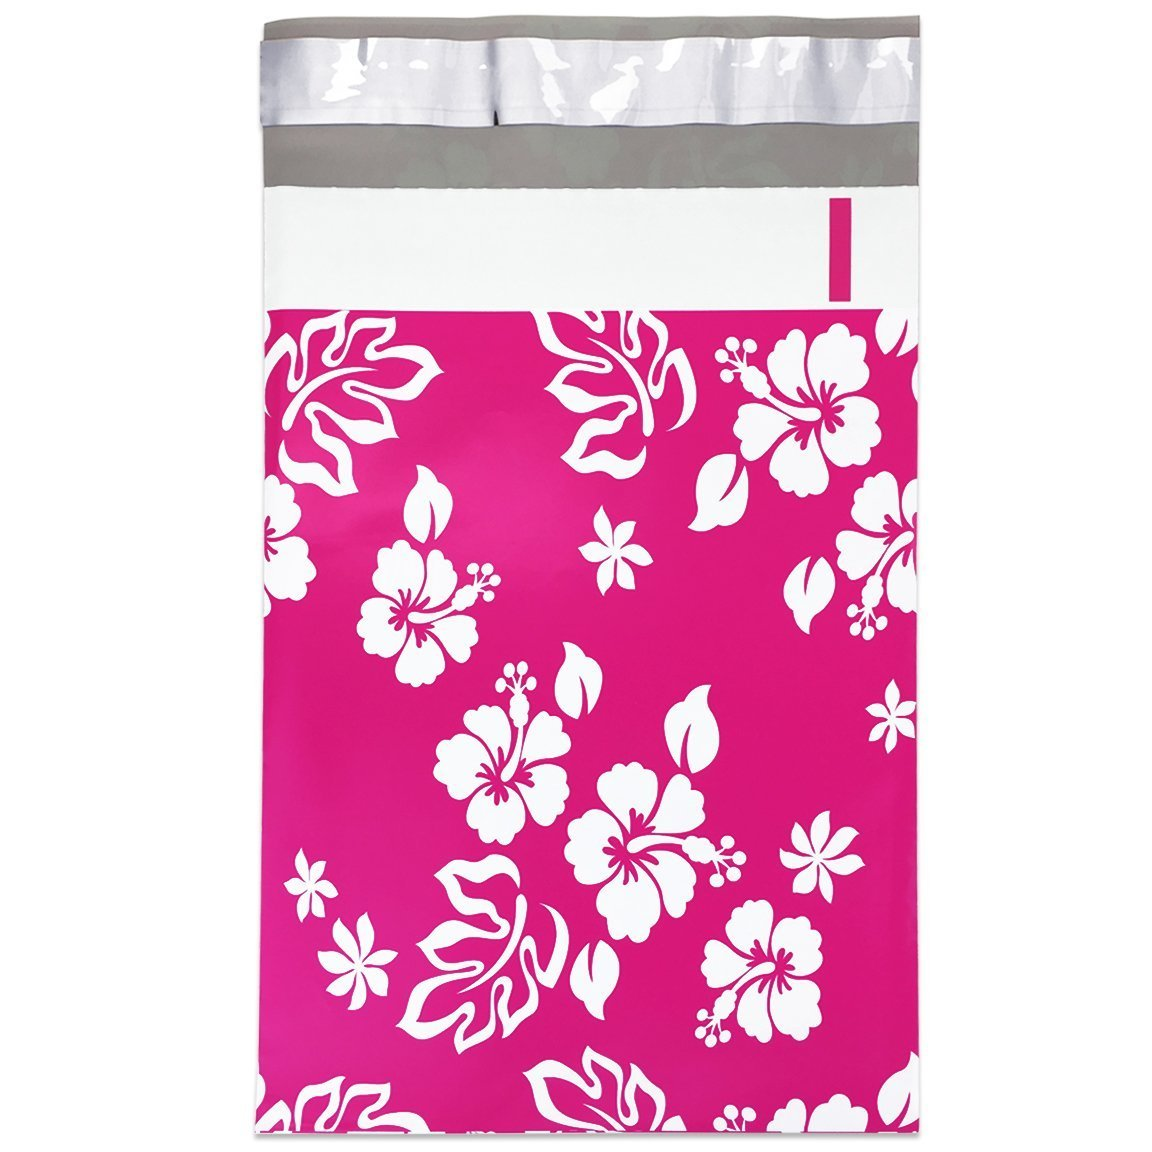 Poly Mailers Aloha Designer Hawaiian Desigenr Mailers Shipping Envelopes Pink Boutique Custom Bags #SmileMail (100 6x9)